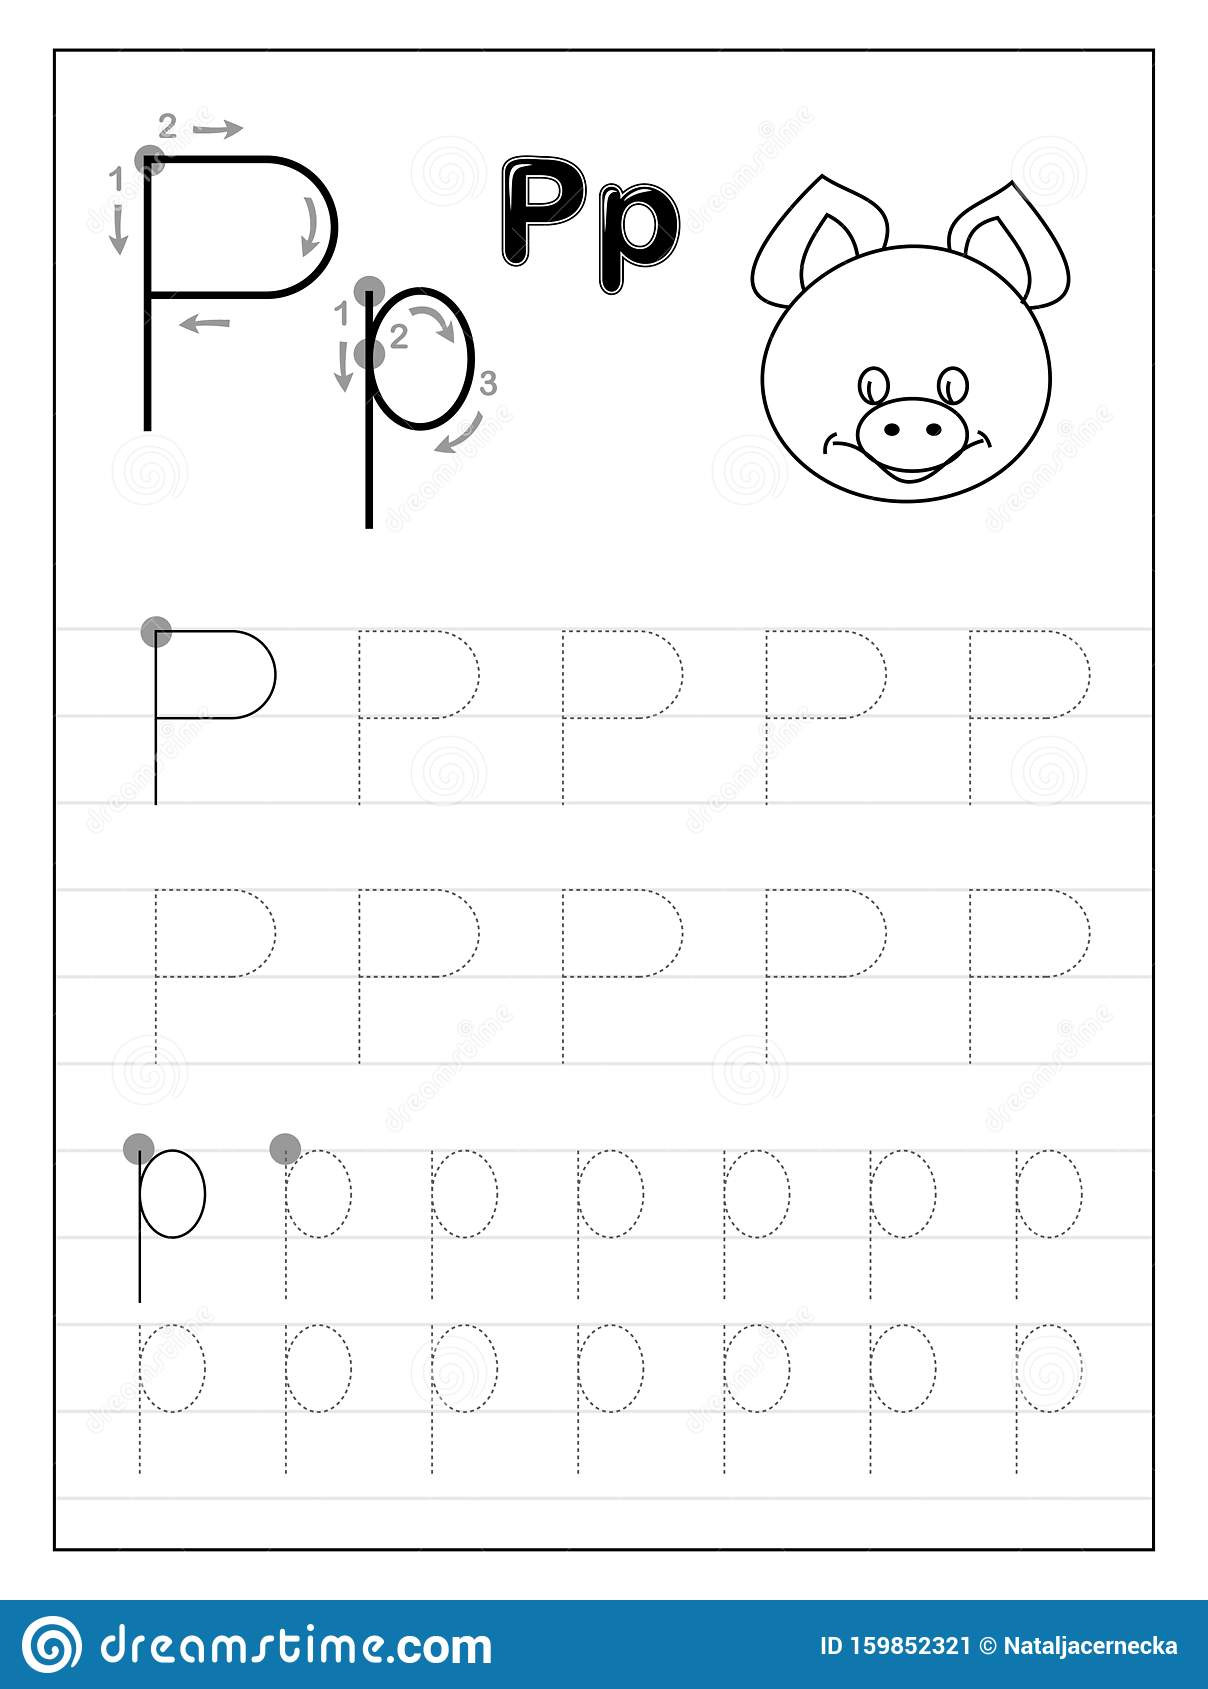 Free Printable Letter P Worksheets Tracing Alphabet Letter P Black and White Educational Pages